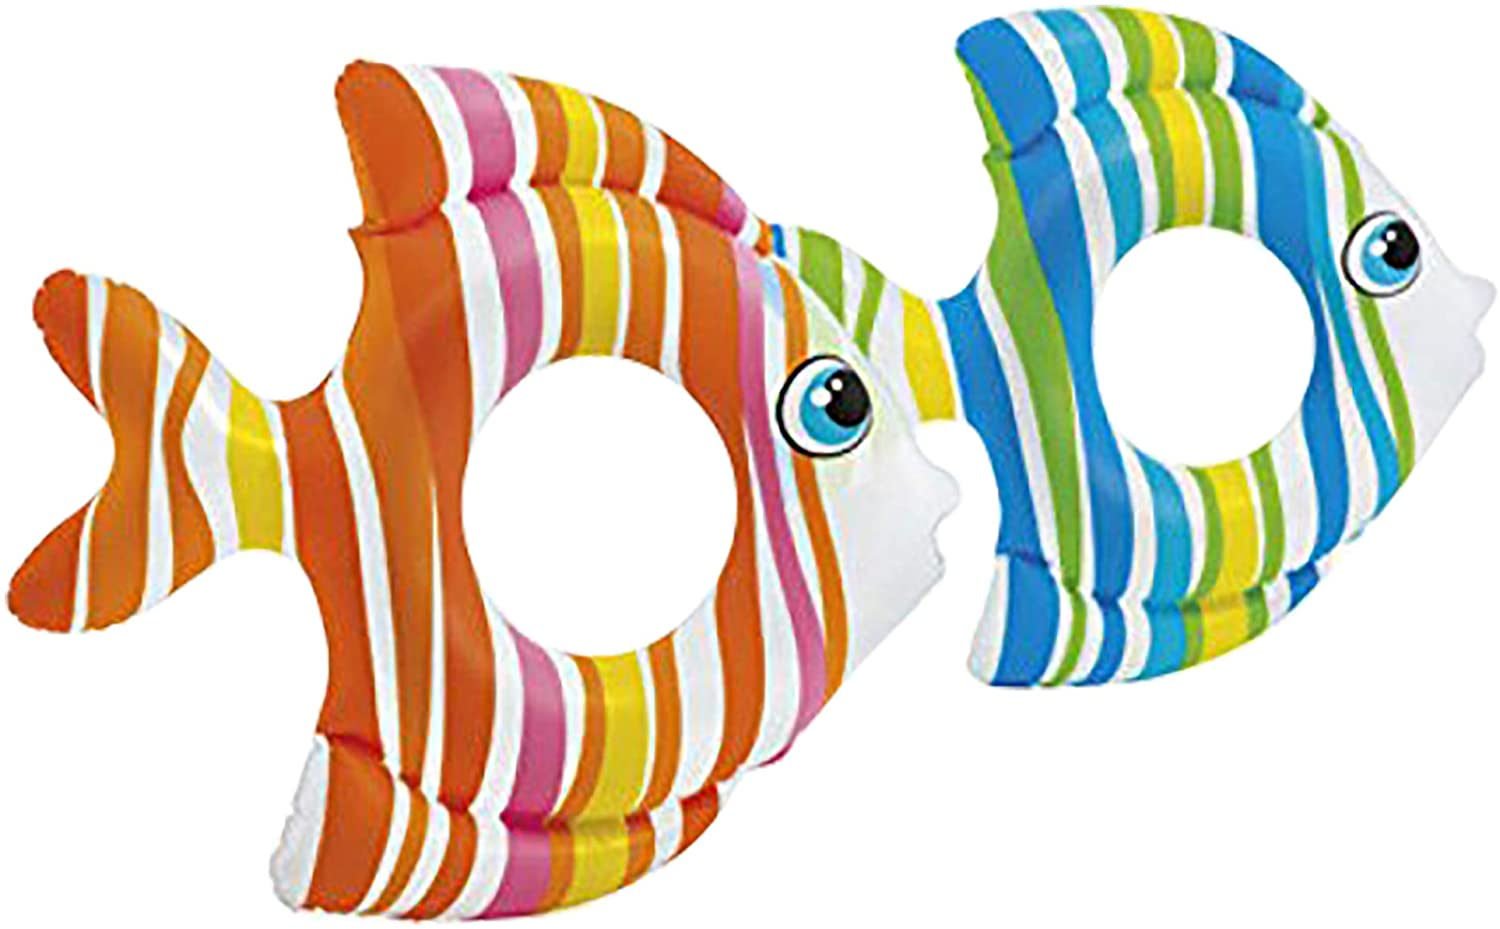 Intex Tropical Fish Inflatable Swim Ring, Colors May Vary, 2 pack